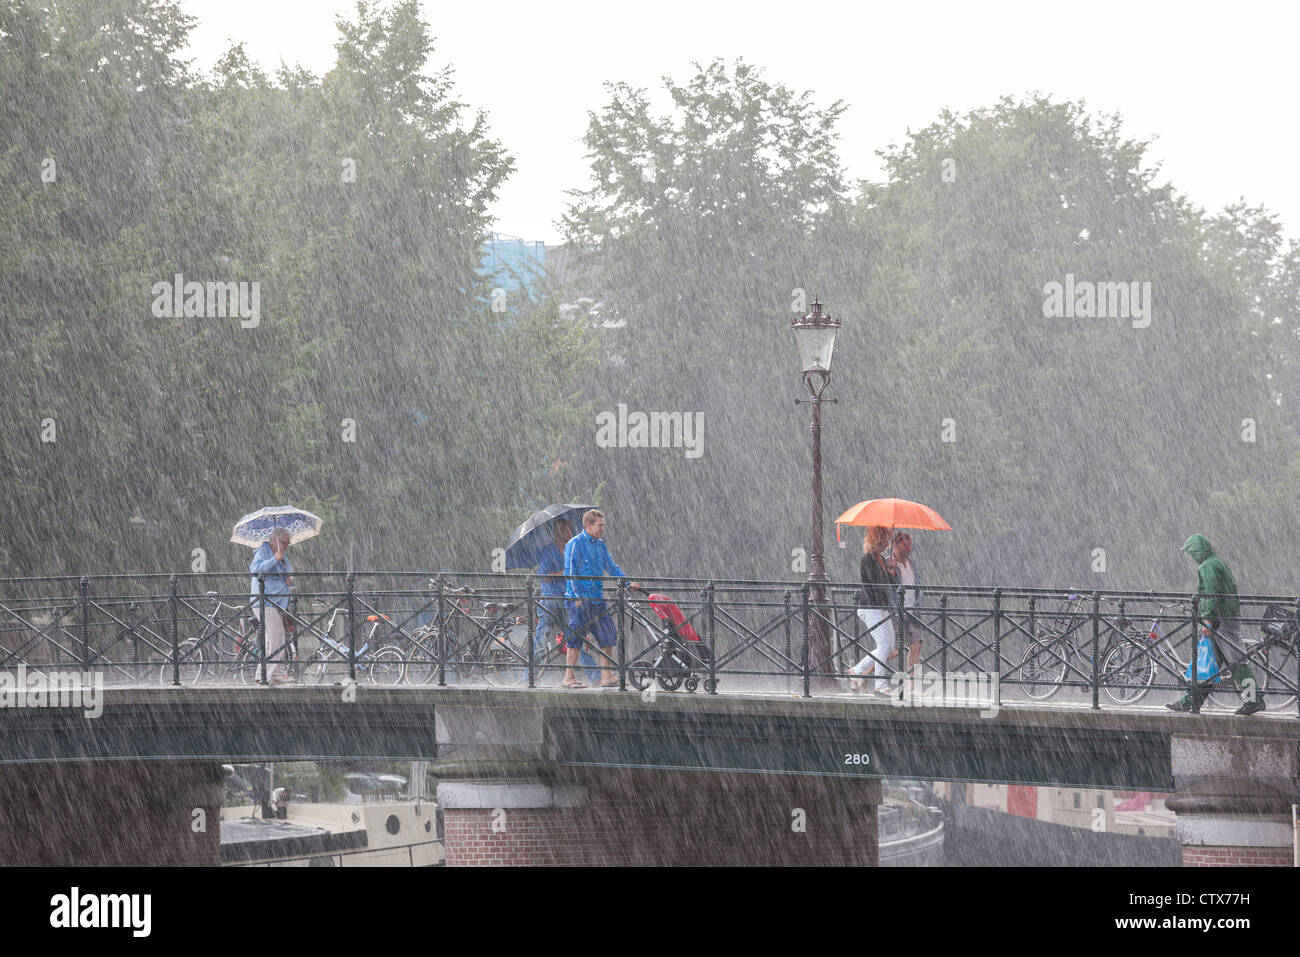 Amsterdam bridge. Sudden torrential summer rain. People on a bridge with umbrellas. One local in rain gear with - Stock Image